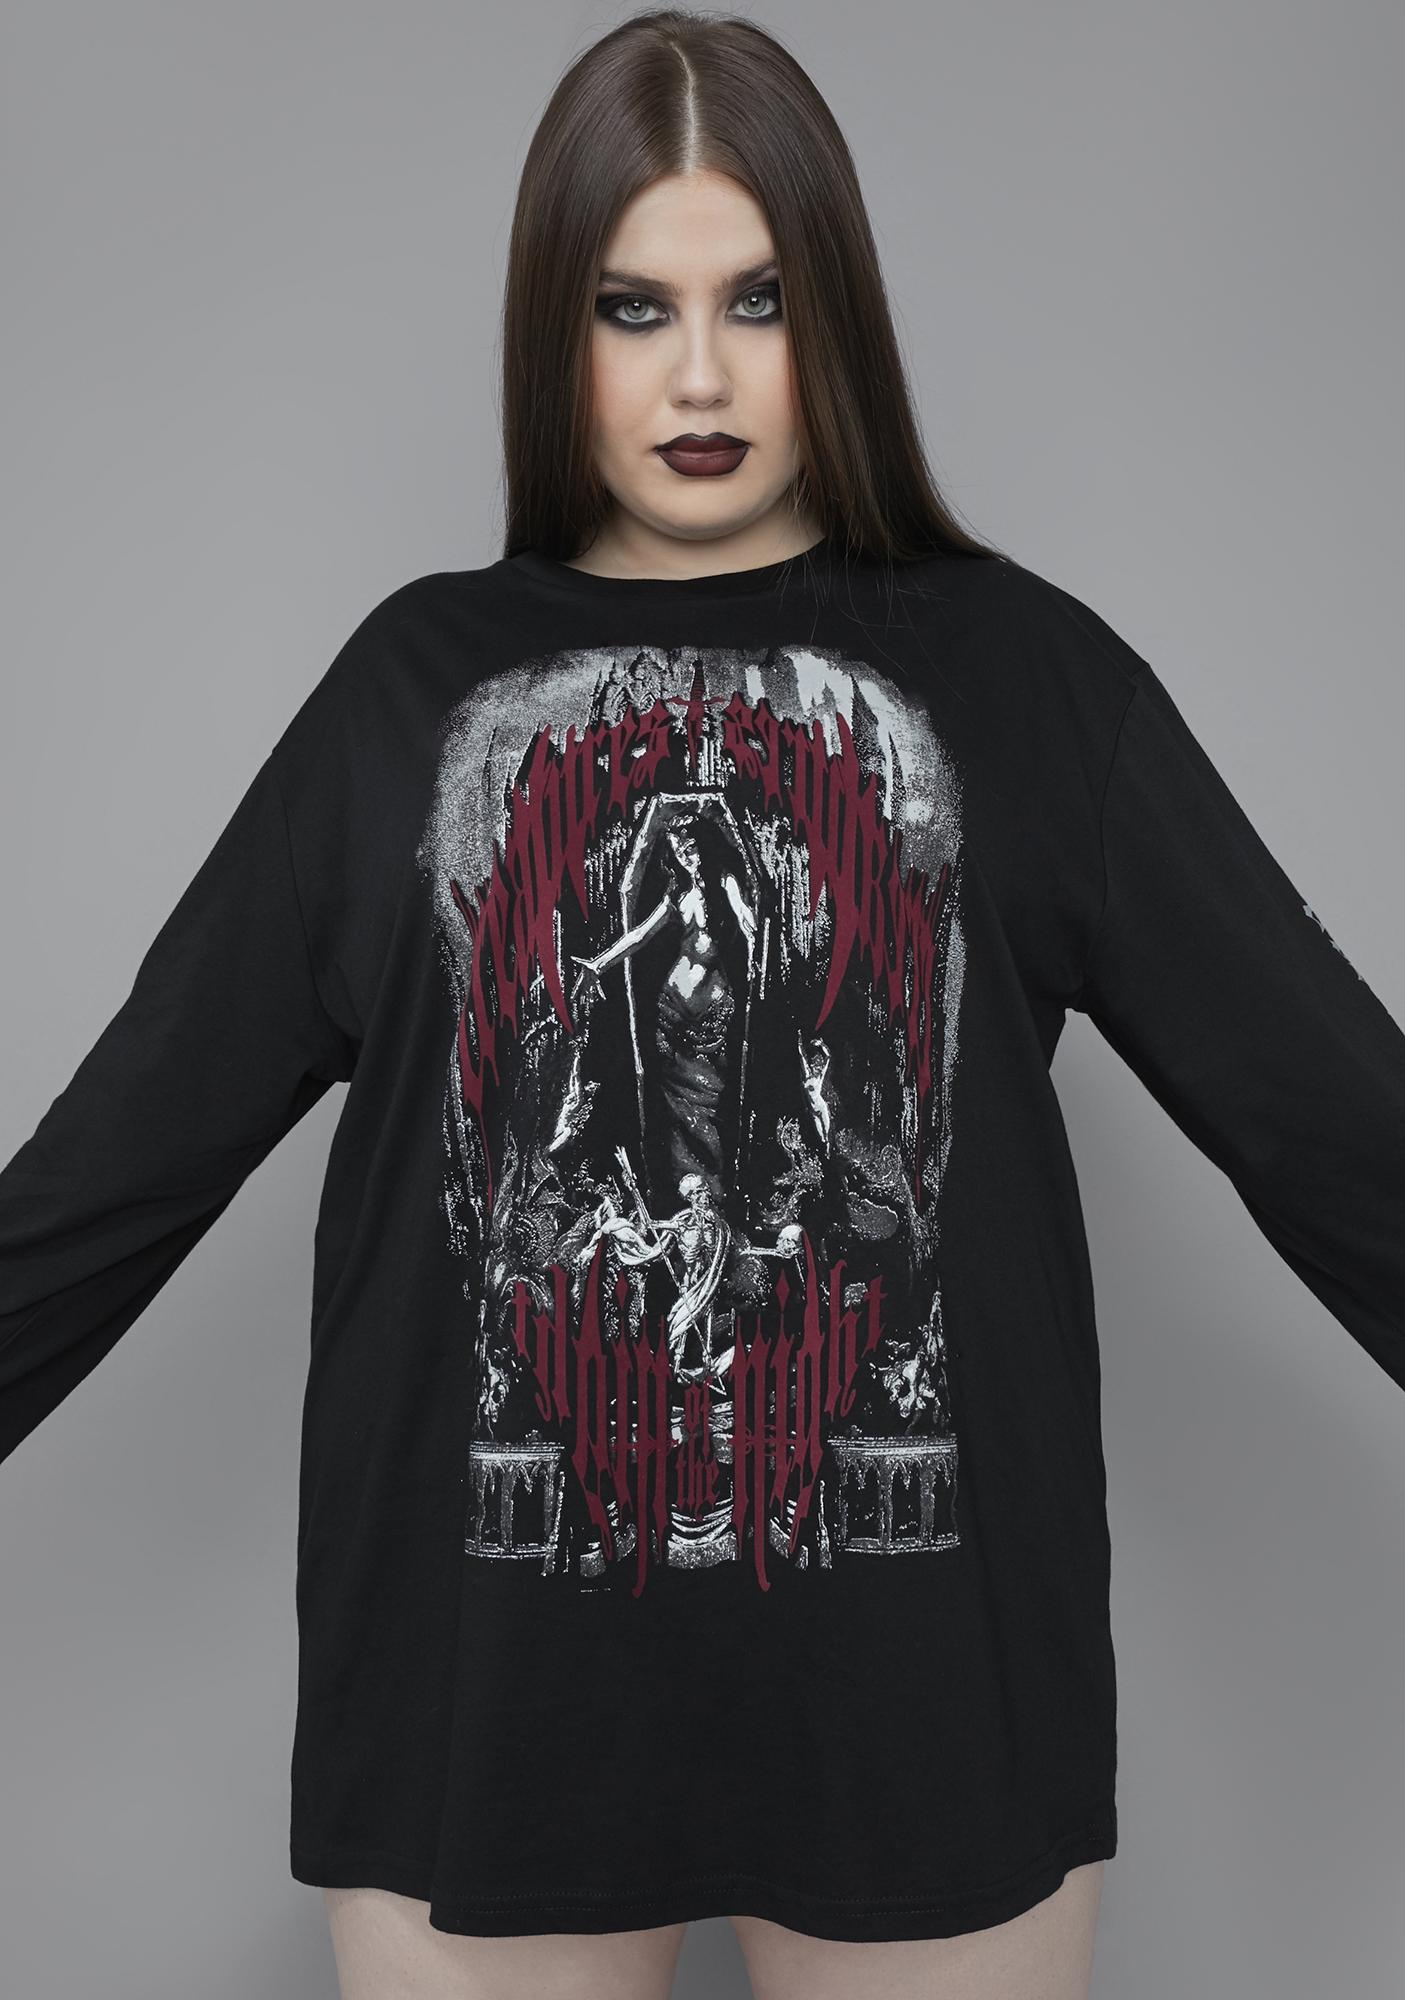 Widow My Heart Of Darkness Graphic Tee